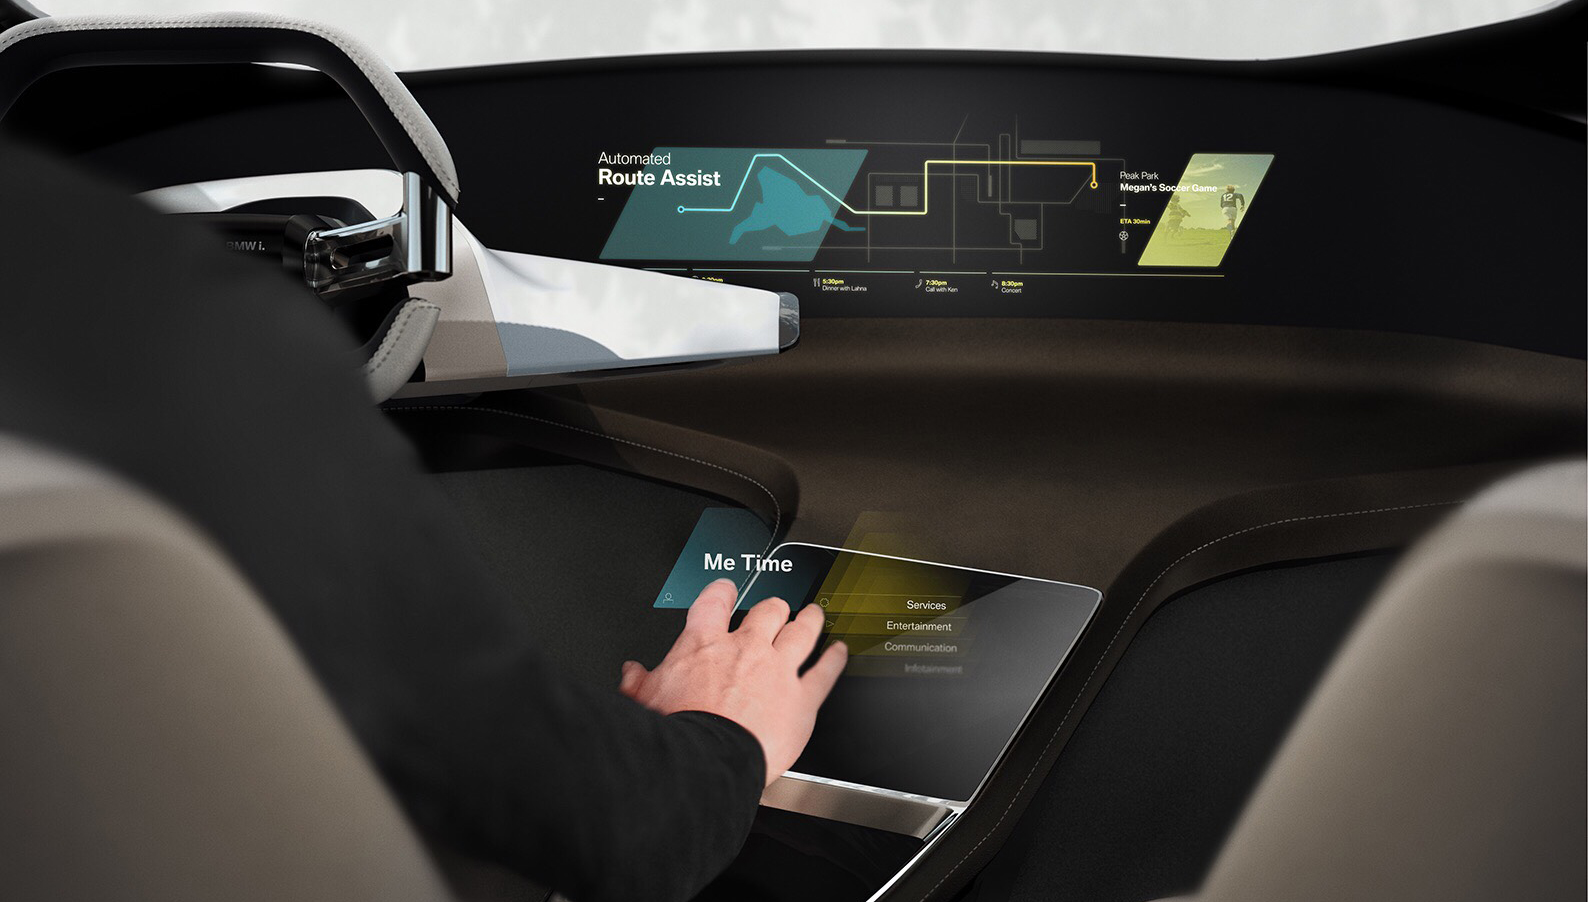 BMW will debut the HoloActive Touch at CES 2017 in Las Vegas in January.